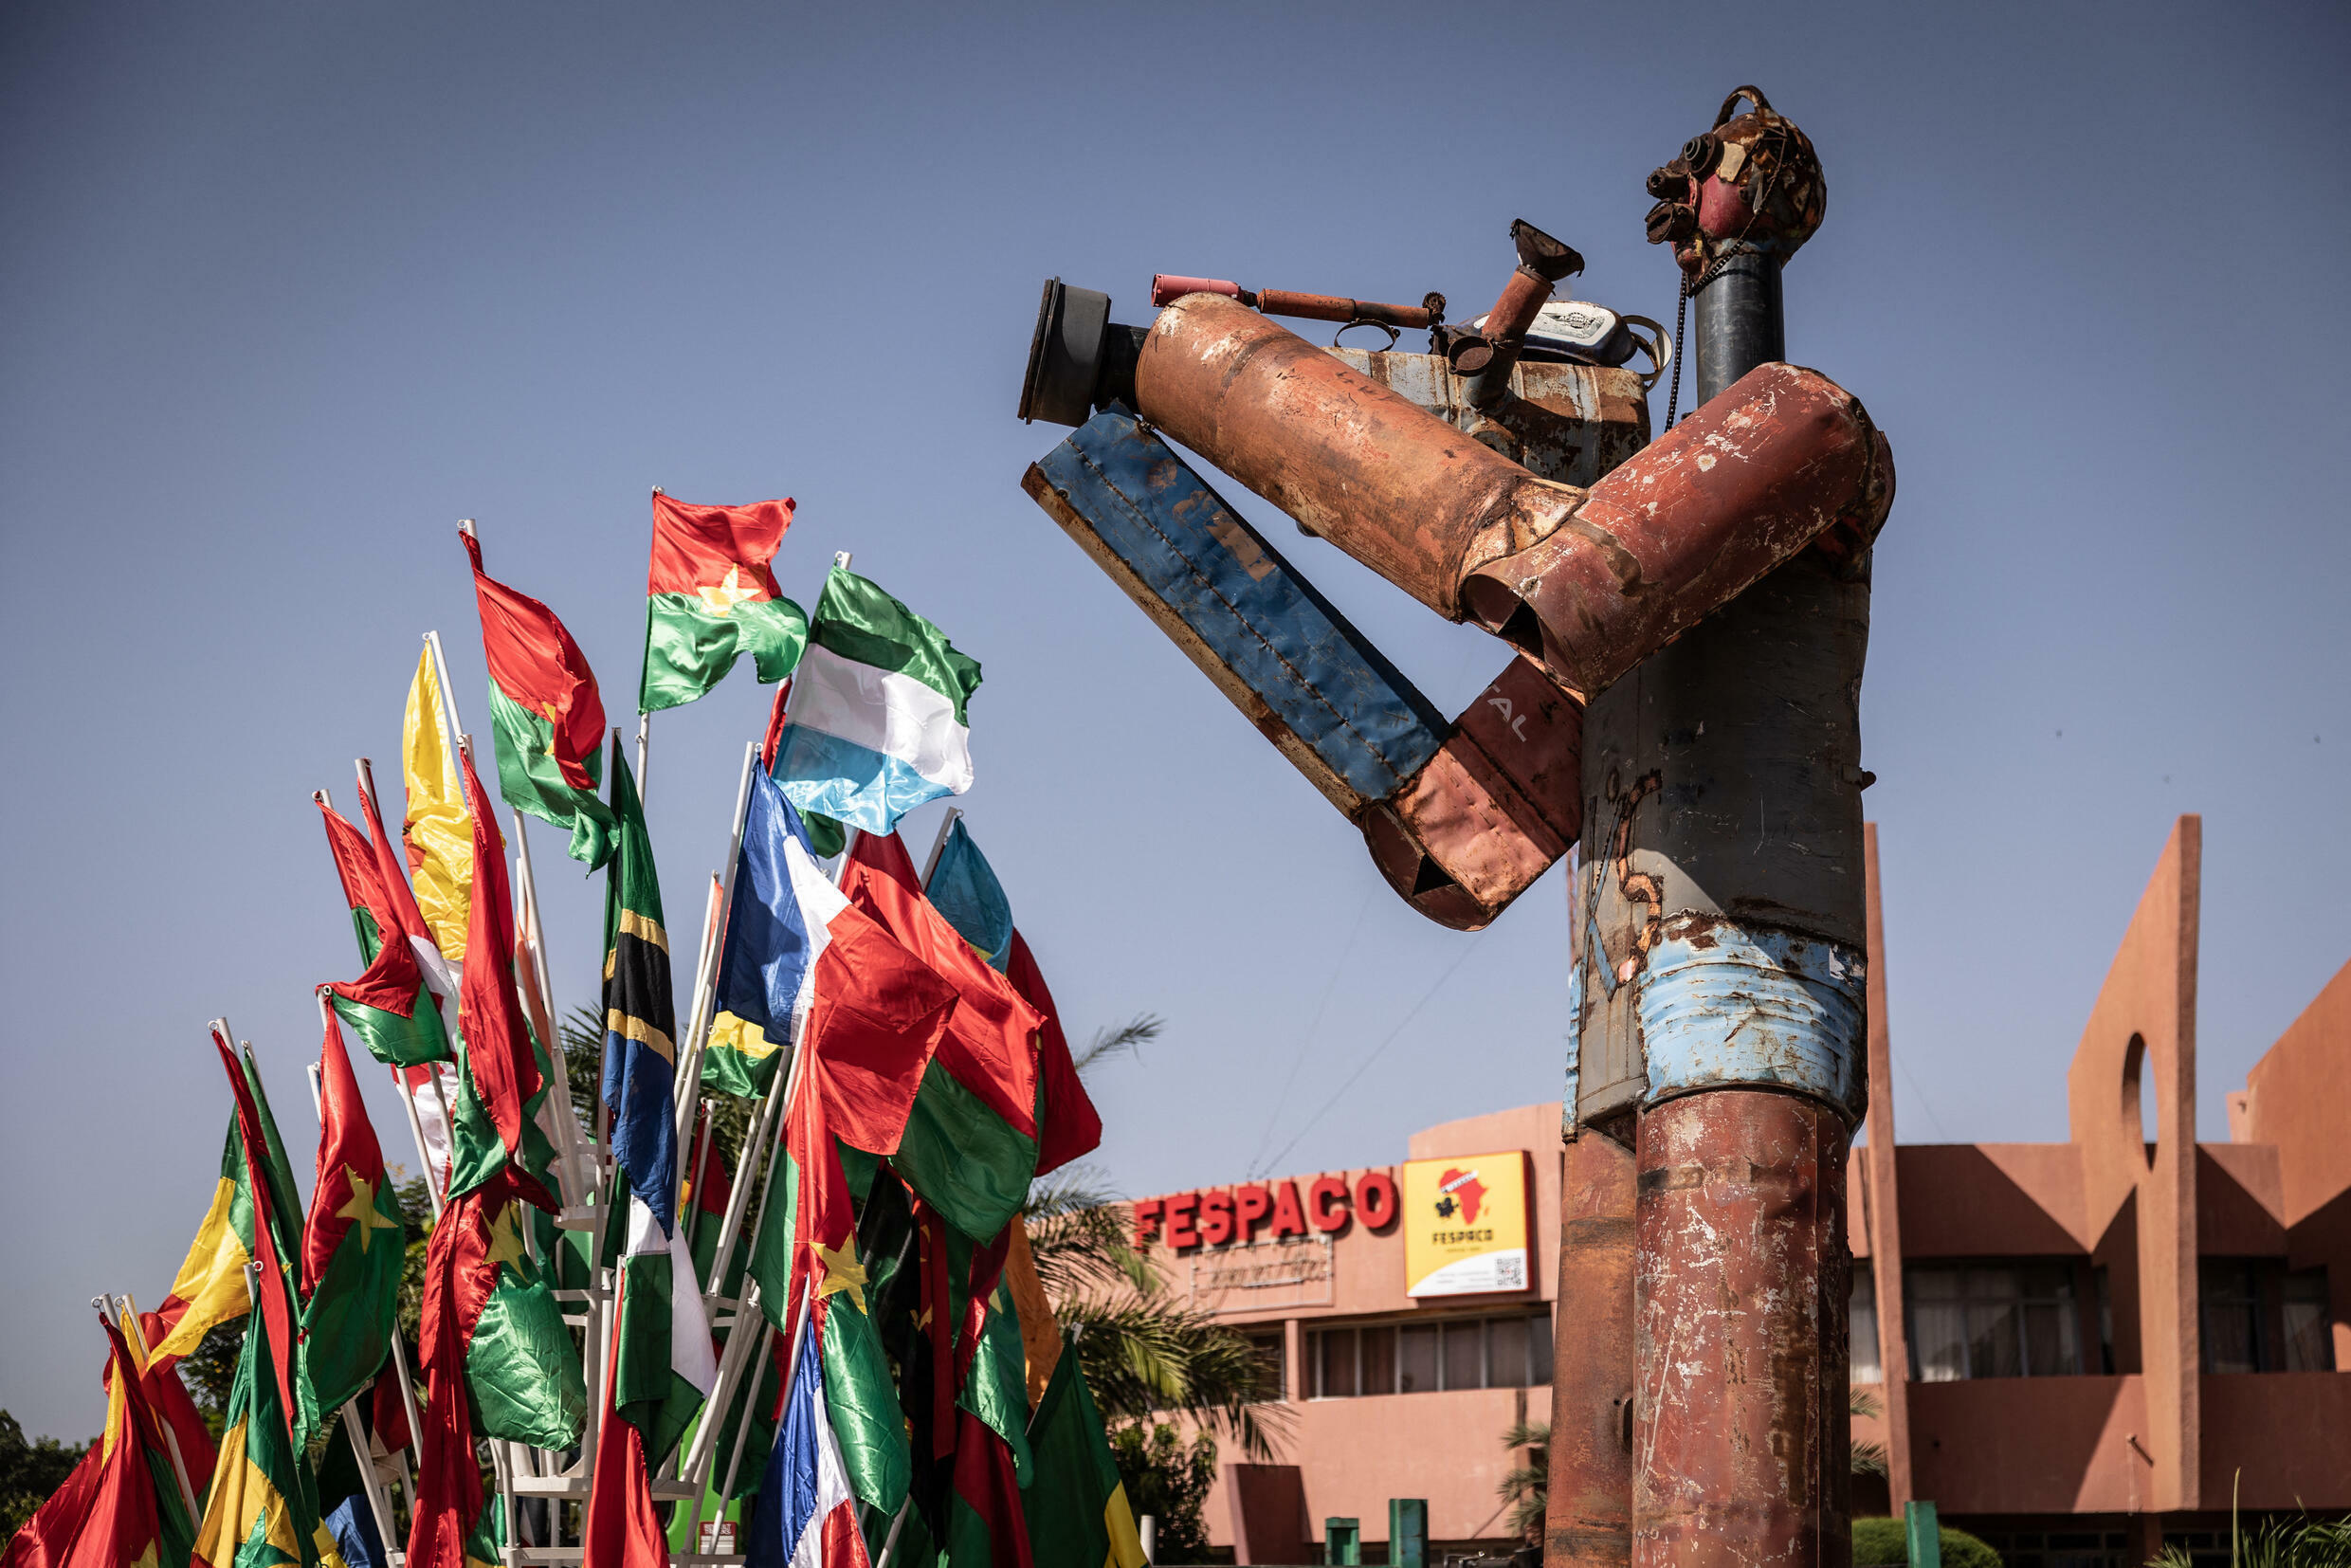 statue of a cameraman stands at the Pan-African Film and Television Festival (FESPACO) headquarters in Ouagadougou, on October 14, 2021. Africa's biggest film festival kicks off on October 16, 2021 in Burkina Faso's capital Ouagadougou, delayed eight months by the Covid-19 pandemic and overshadowed by a brutal six-year-old jihadist insurgency. Seventeen feature-length works are in the main competition for the Pan-African Film and Television Festival of Ouagadougou (FESPACO), the biggest date in the continent's cinema and TV industry. OLYMPIA DE MAISMONT / AFP